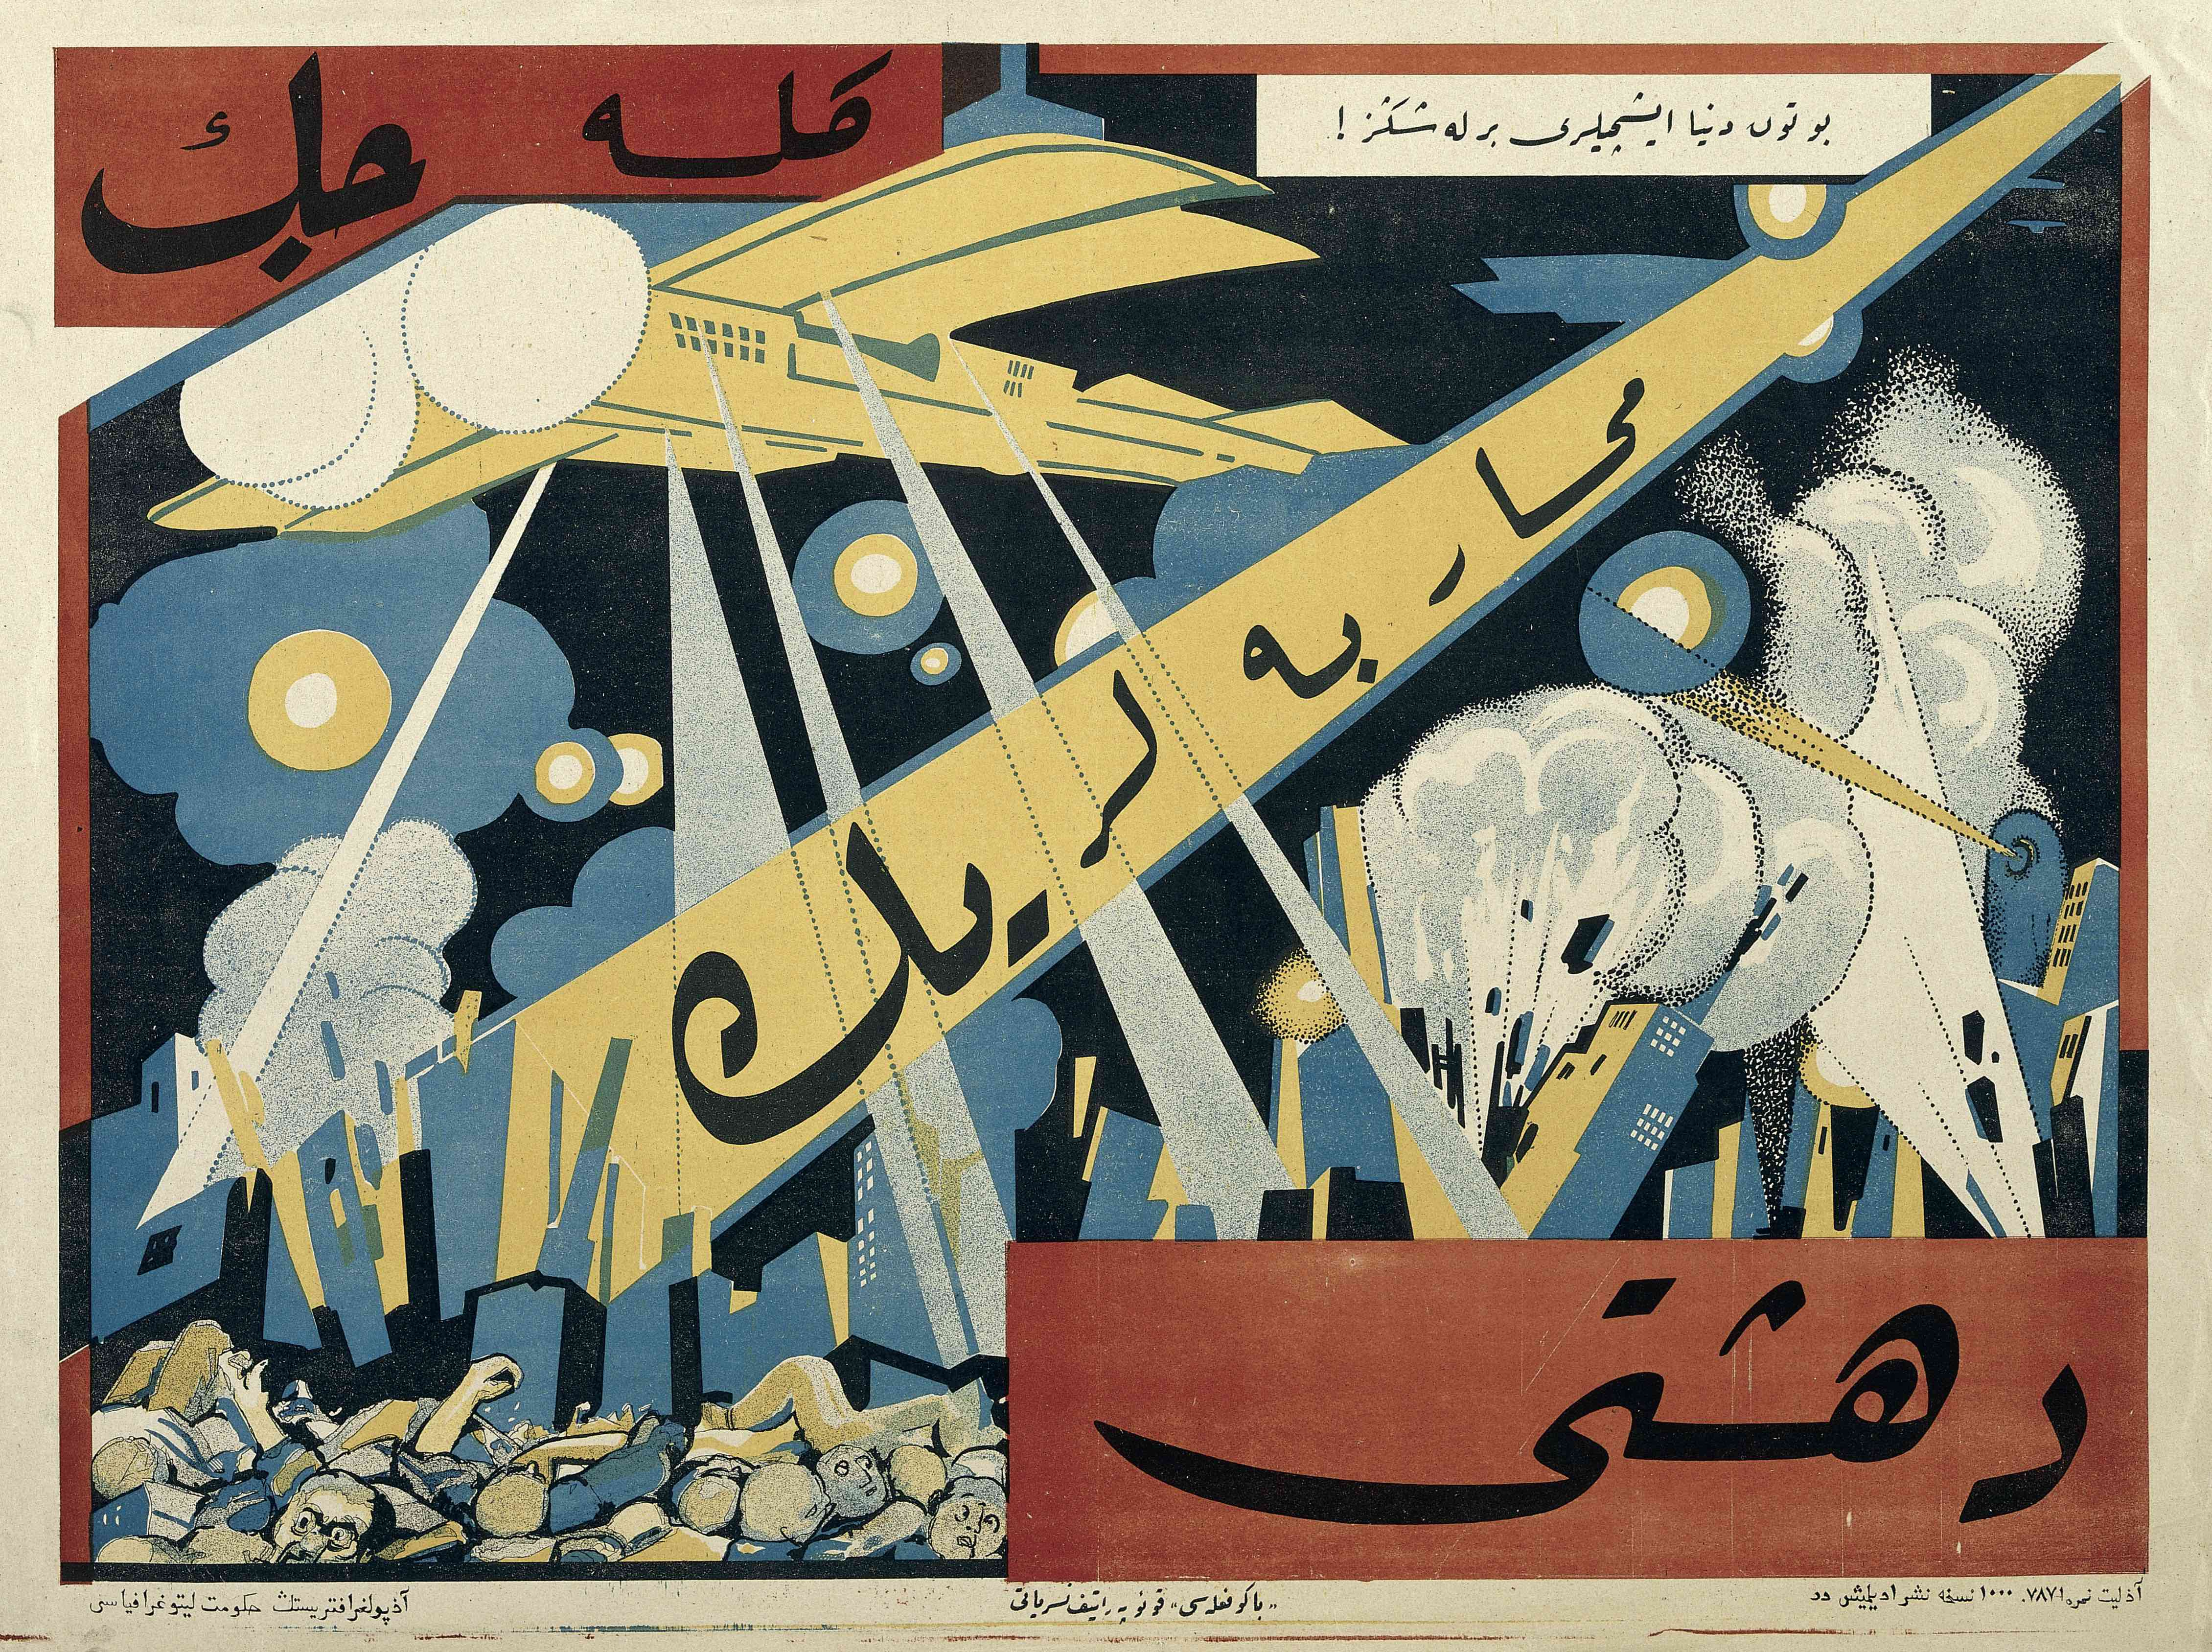 The Nightmare of Future Wars - Workers of the World Unite! , Soviet School, 1920s. Purchased 2016. The David King Collection at Tate